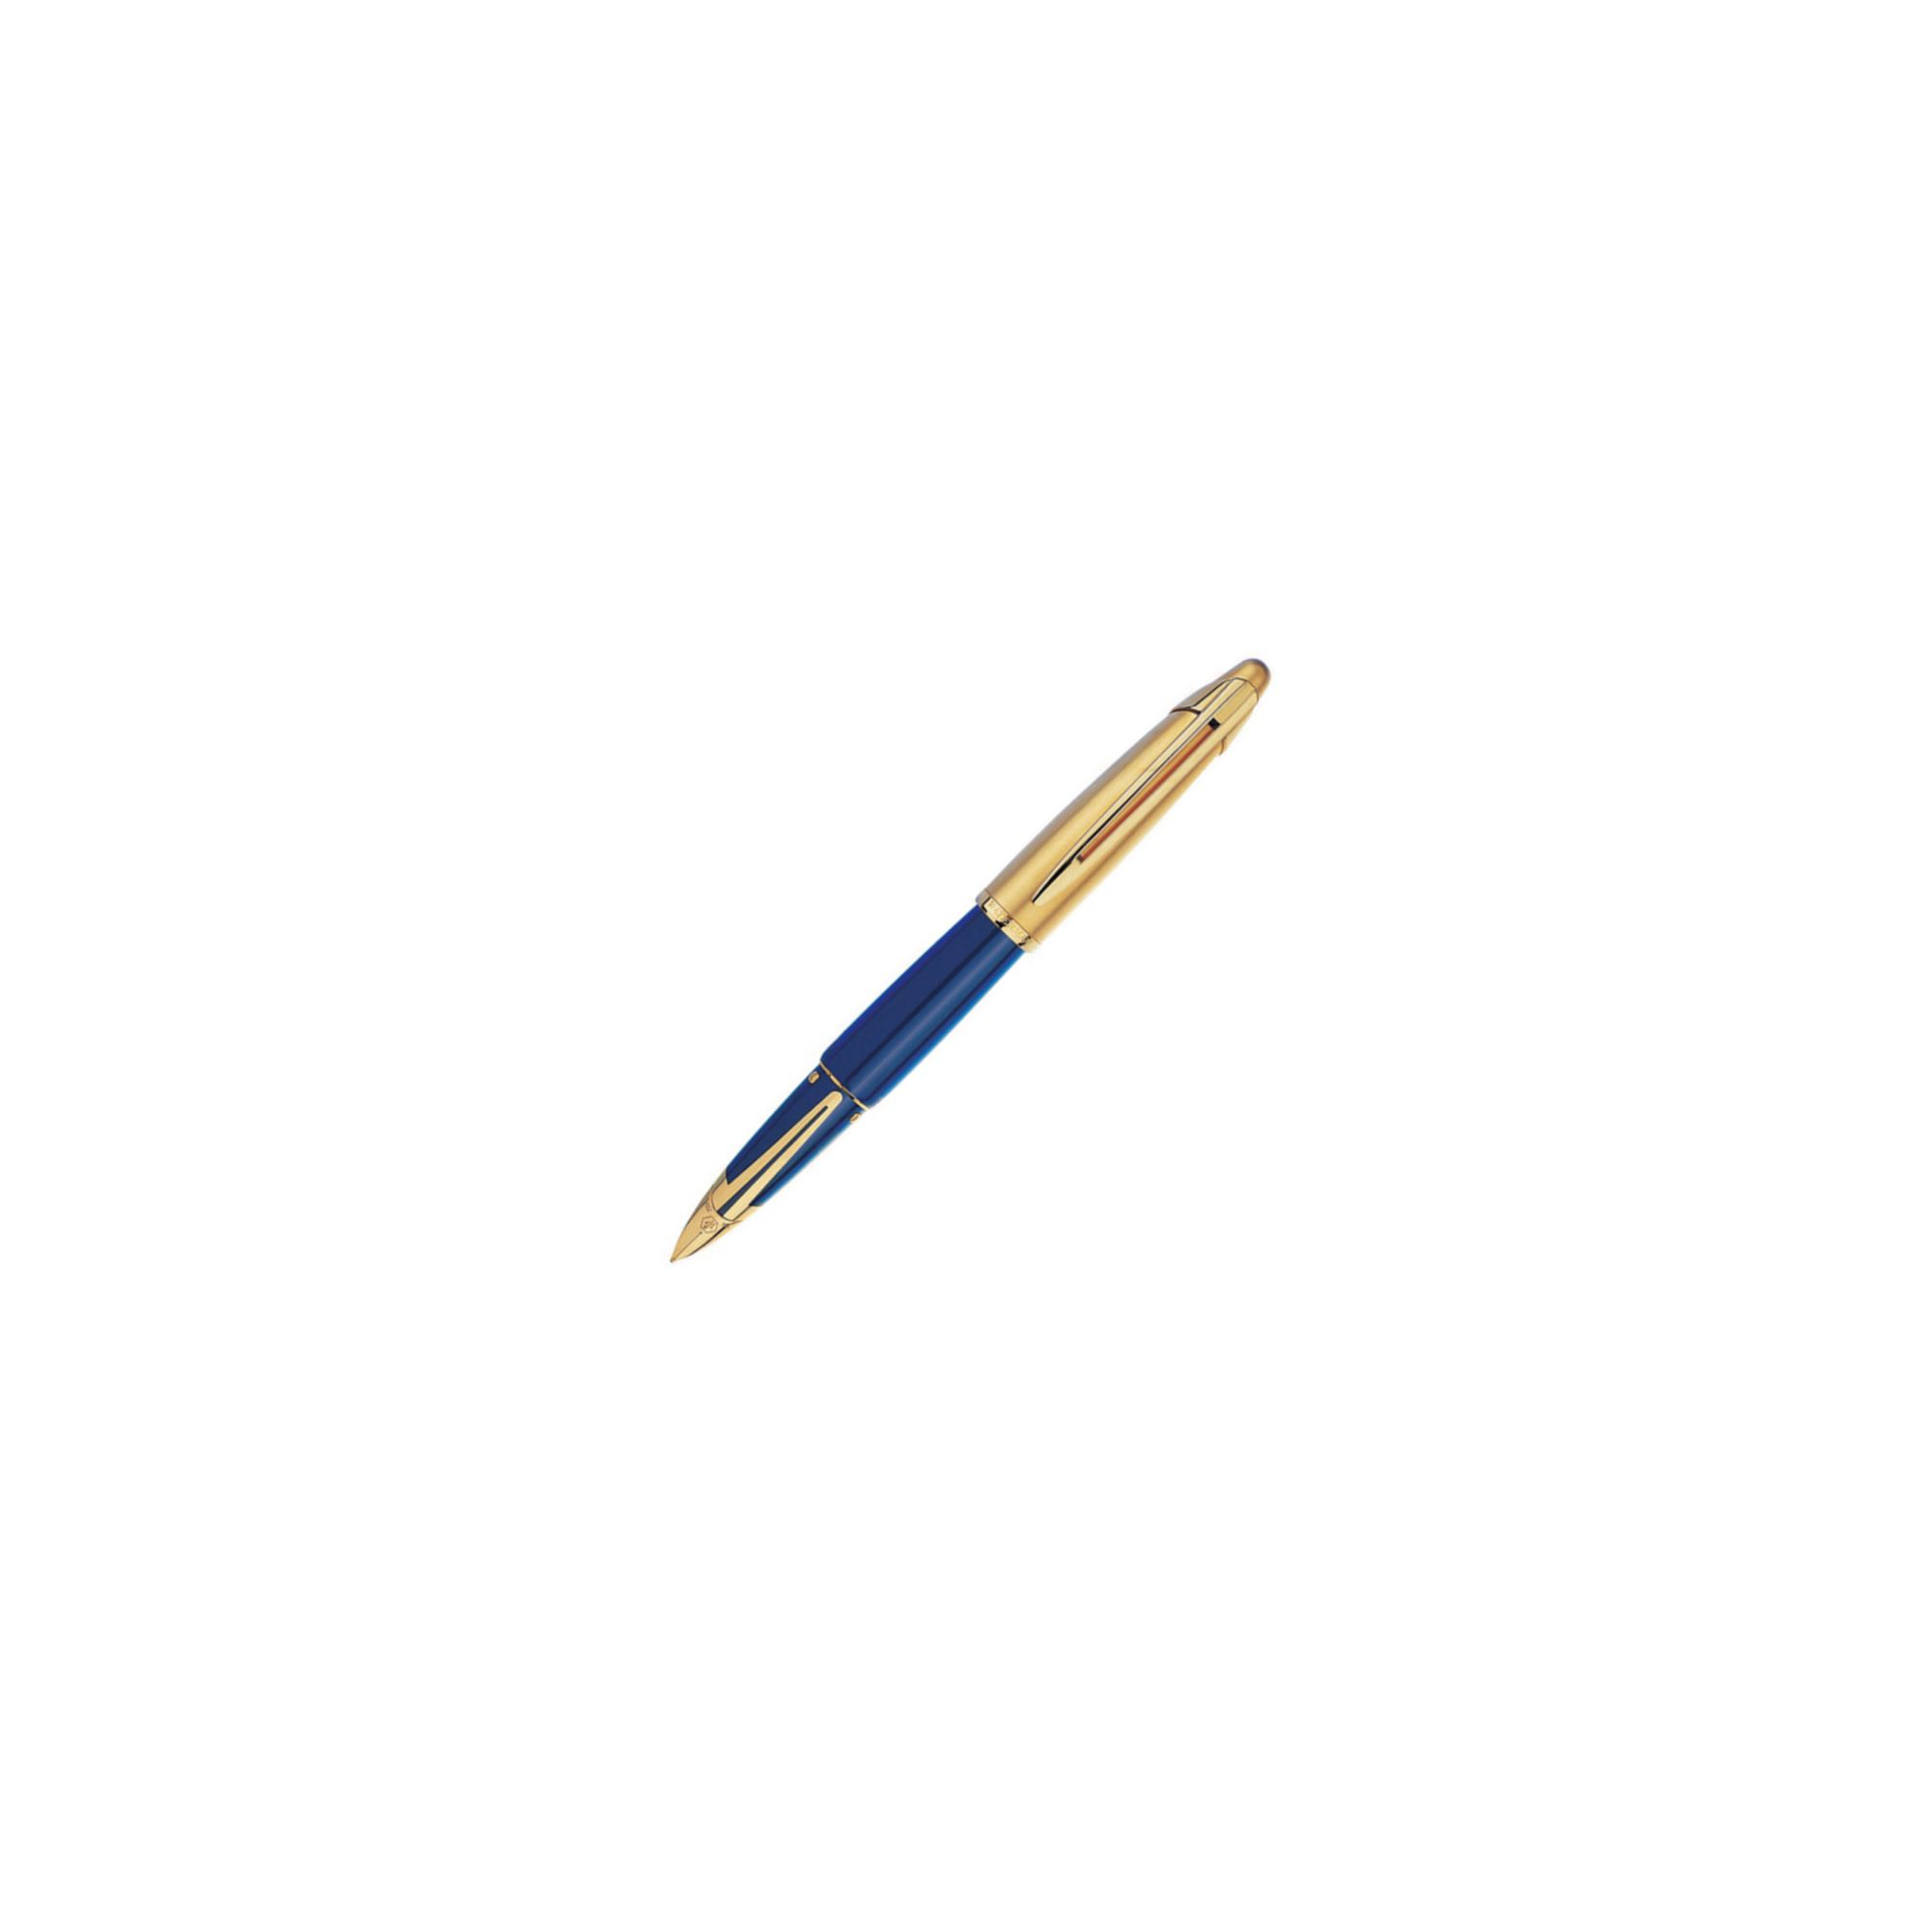 Waterman Edson Sapphire Blue Fountain Pen at Tesco Direct